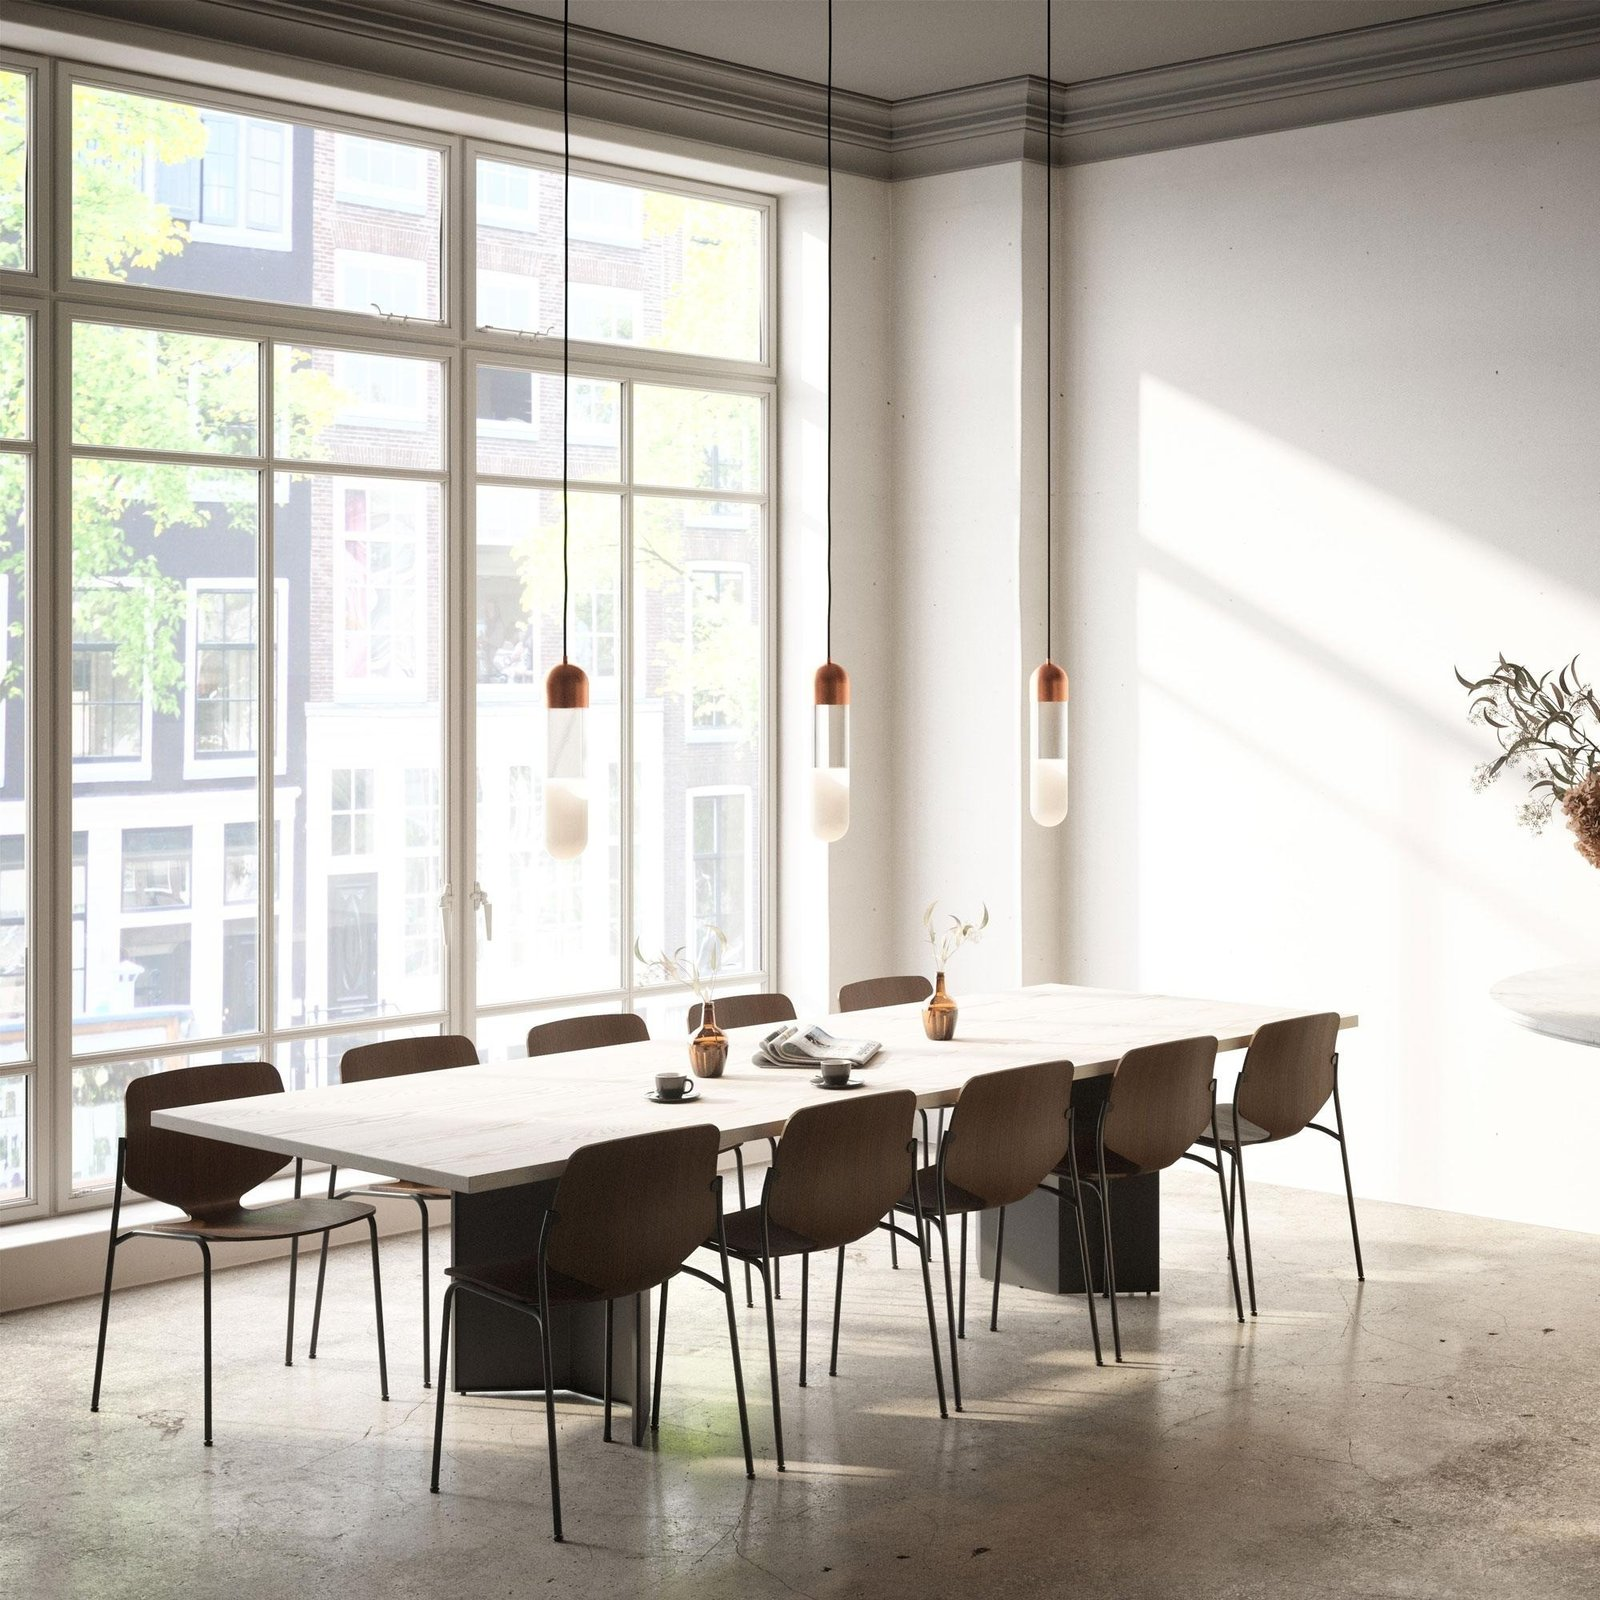 Dining Room, Concrete Floor, Table, Chair, and Pendant Lighting  Best Photos from 15 Pieces You Should Snap Up Before Lumens' Sale Ends This Sunday